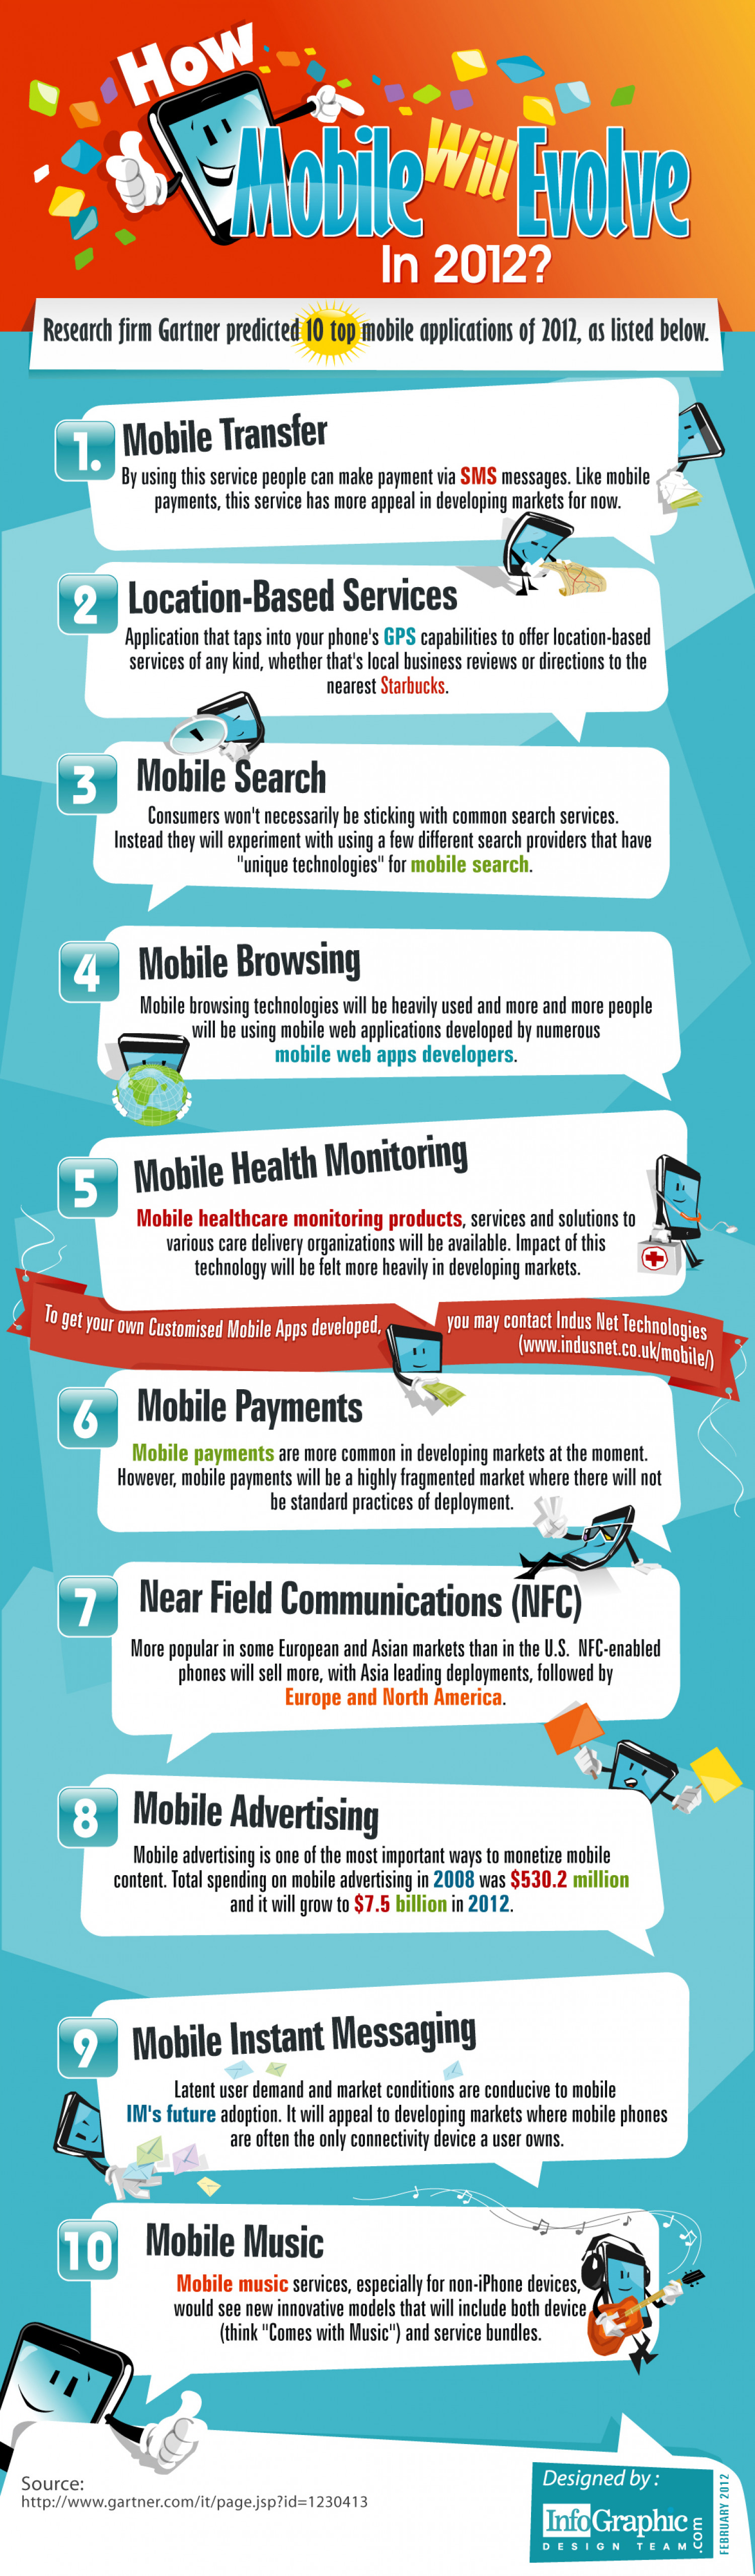 How Mobile Will Evolve In 2012 Infographic